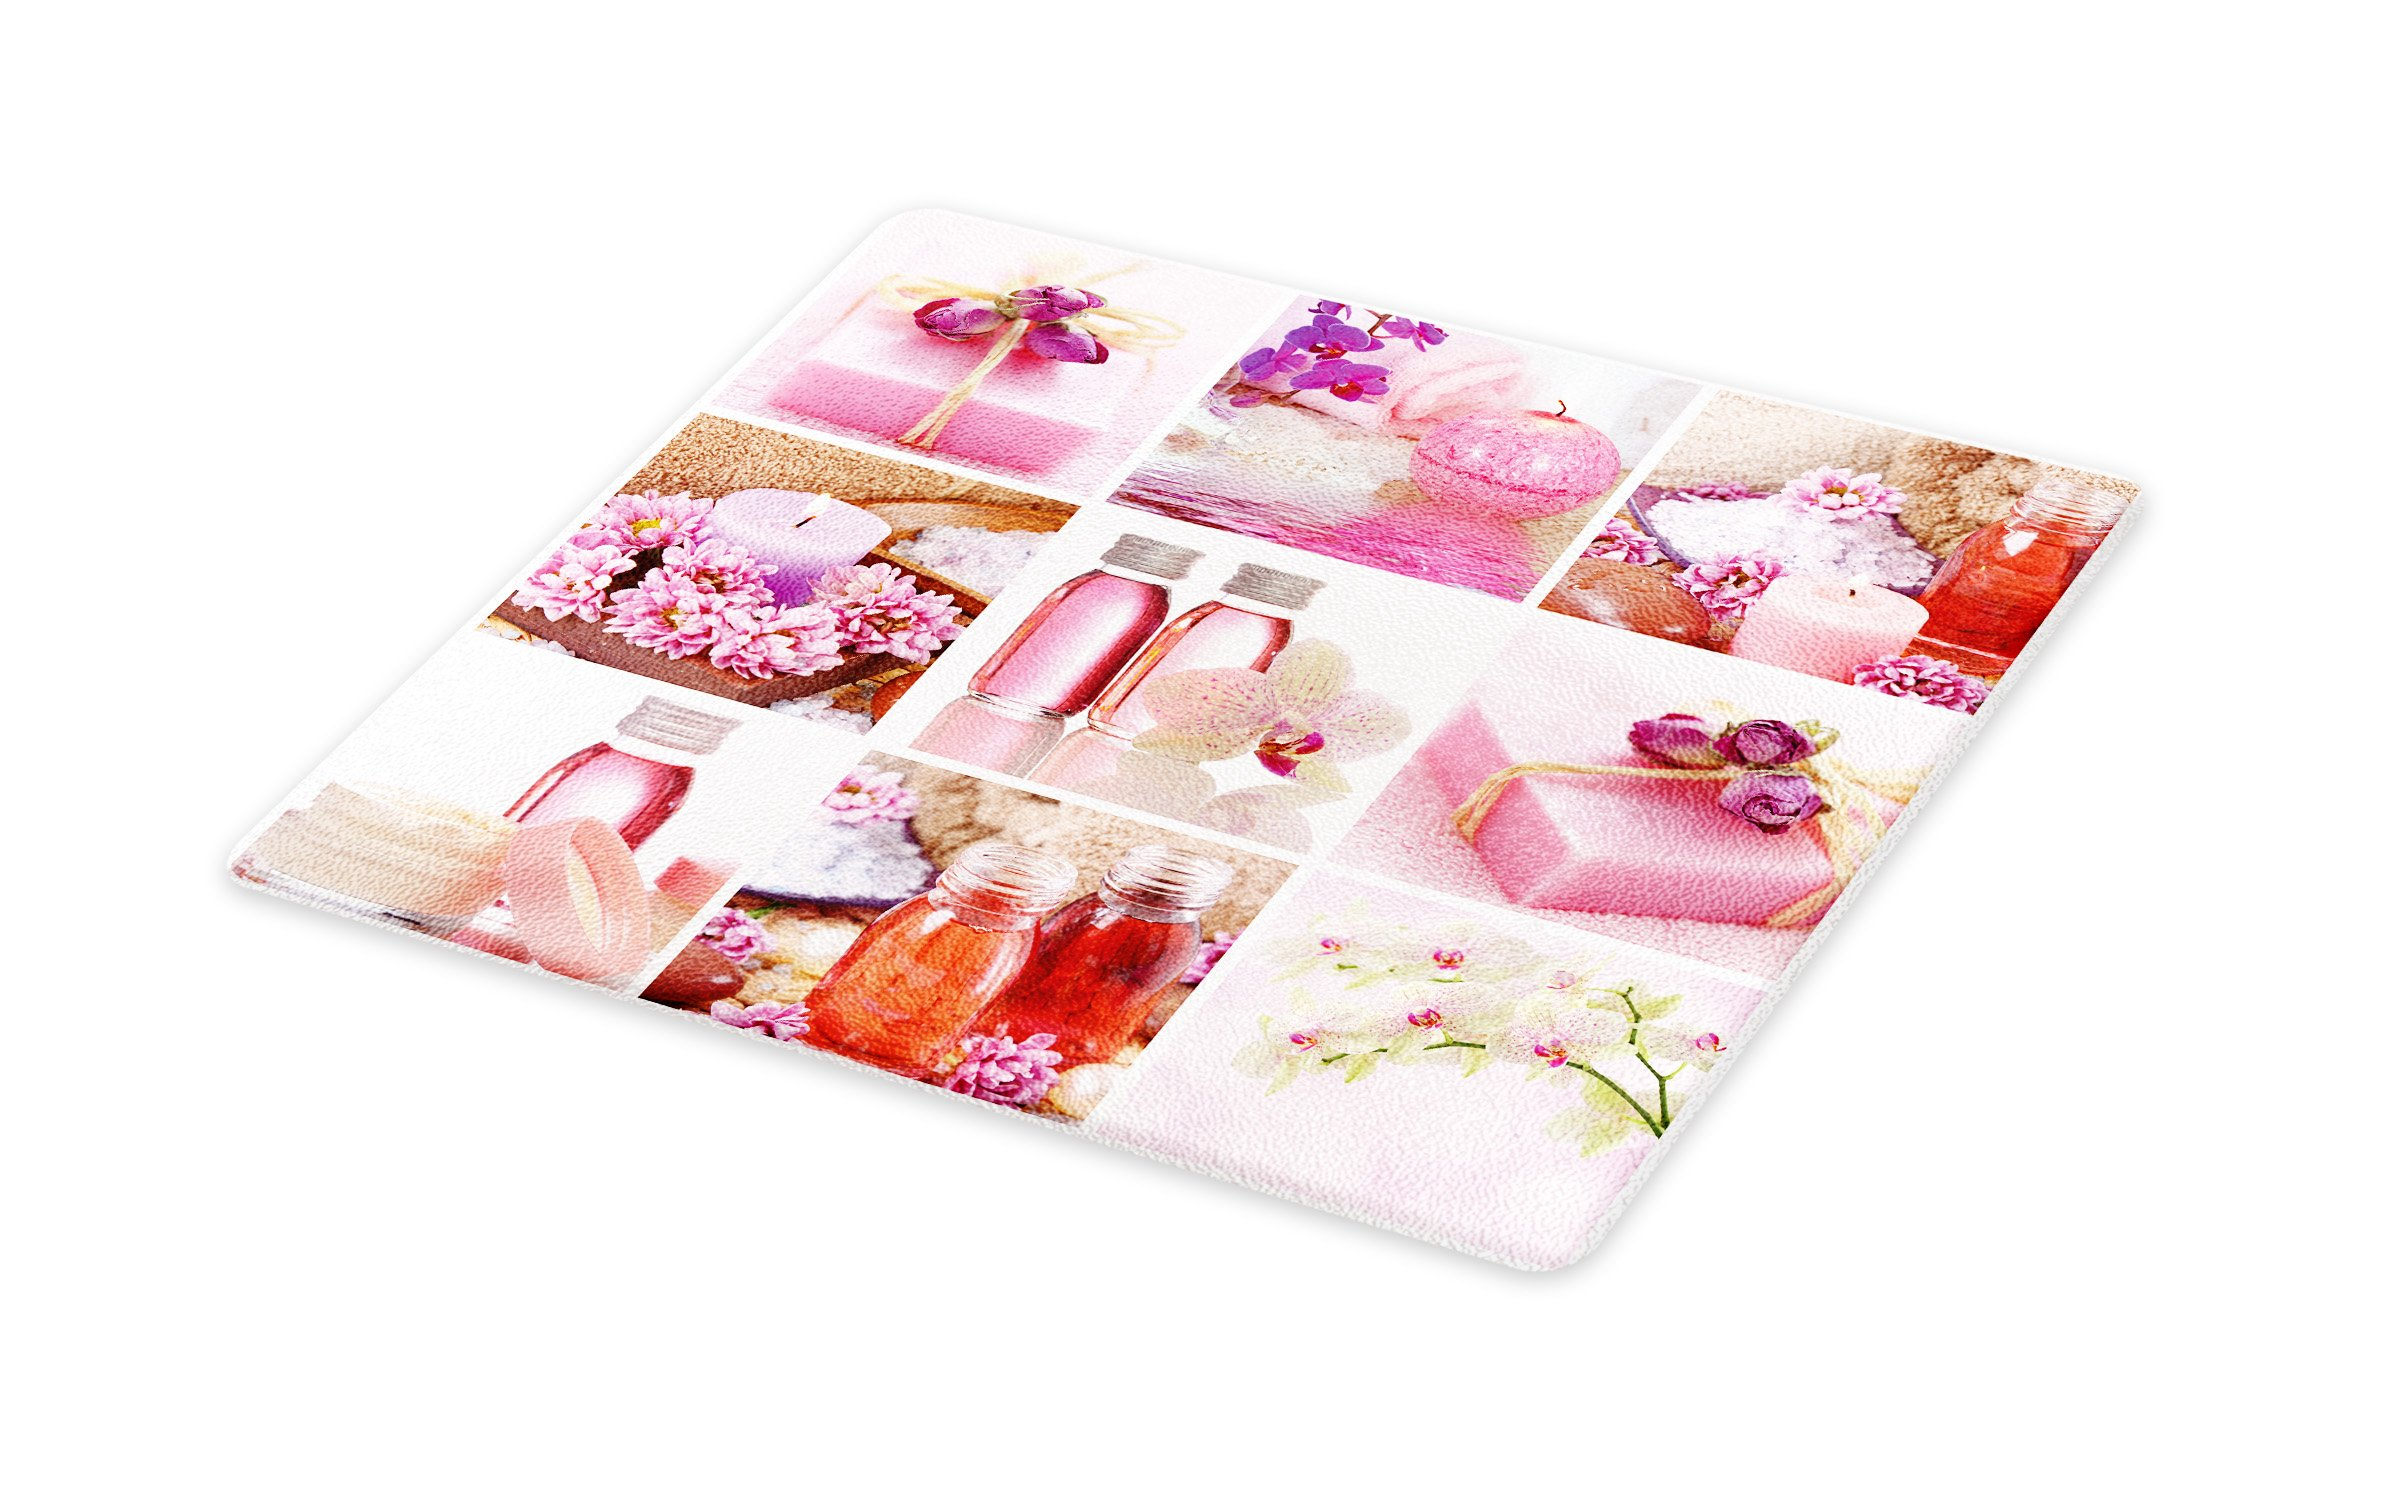 Lunarable Spa Cutting Board, Flowers Pink Gift Wraps Tiny Scent Bottles and Candles Image Collage Print, Decorative Tempered Glass Cutting and Serving Board, Small Size, Lillium Pink and White